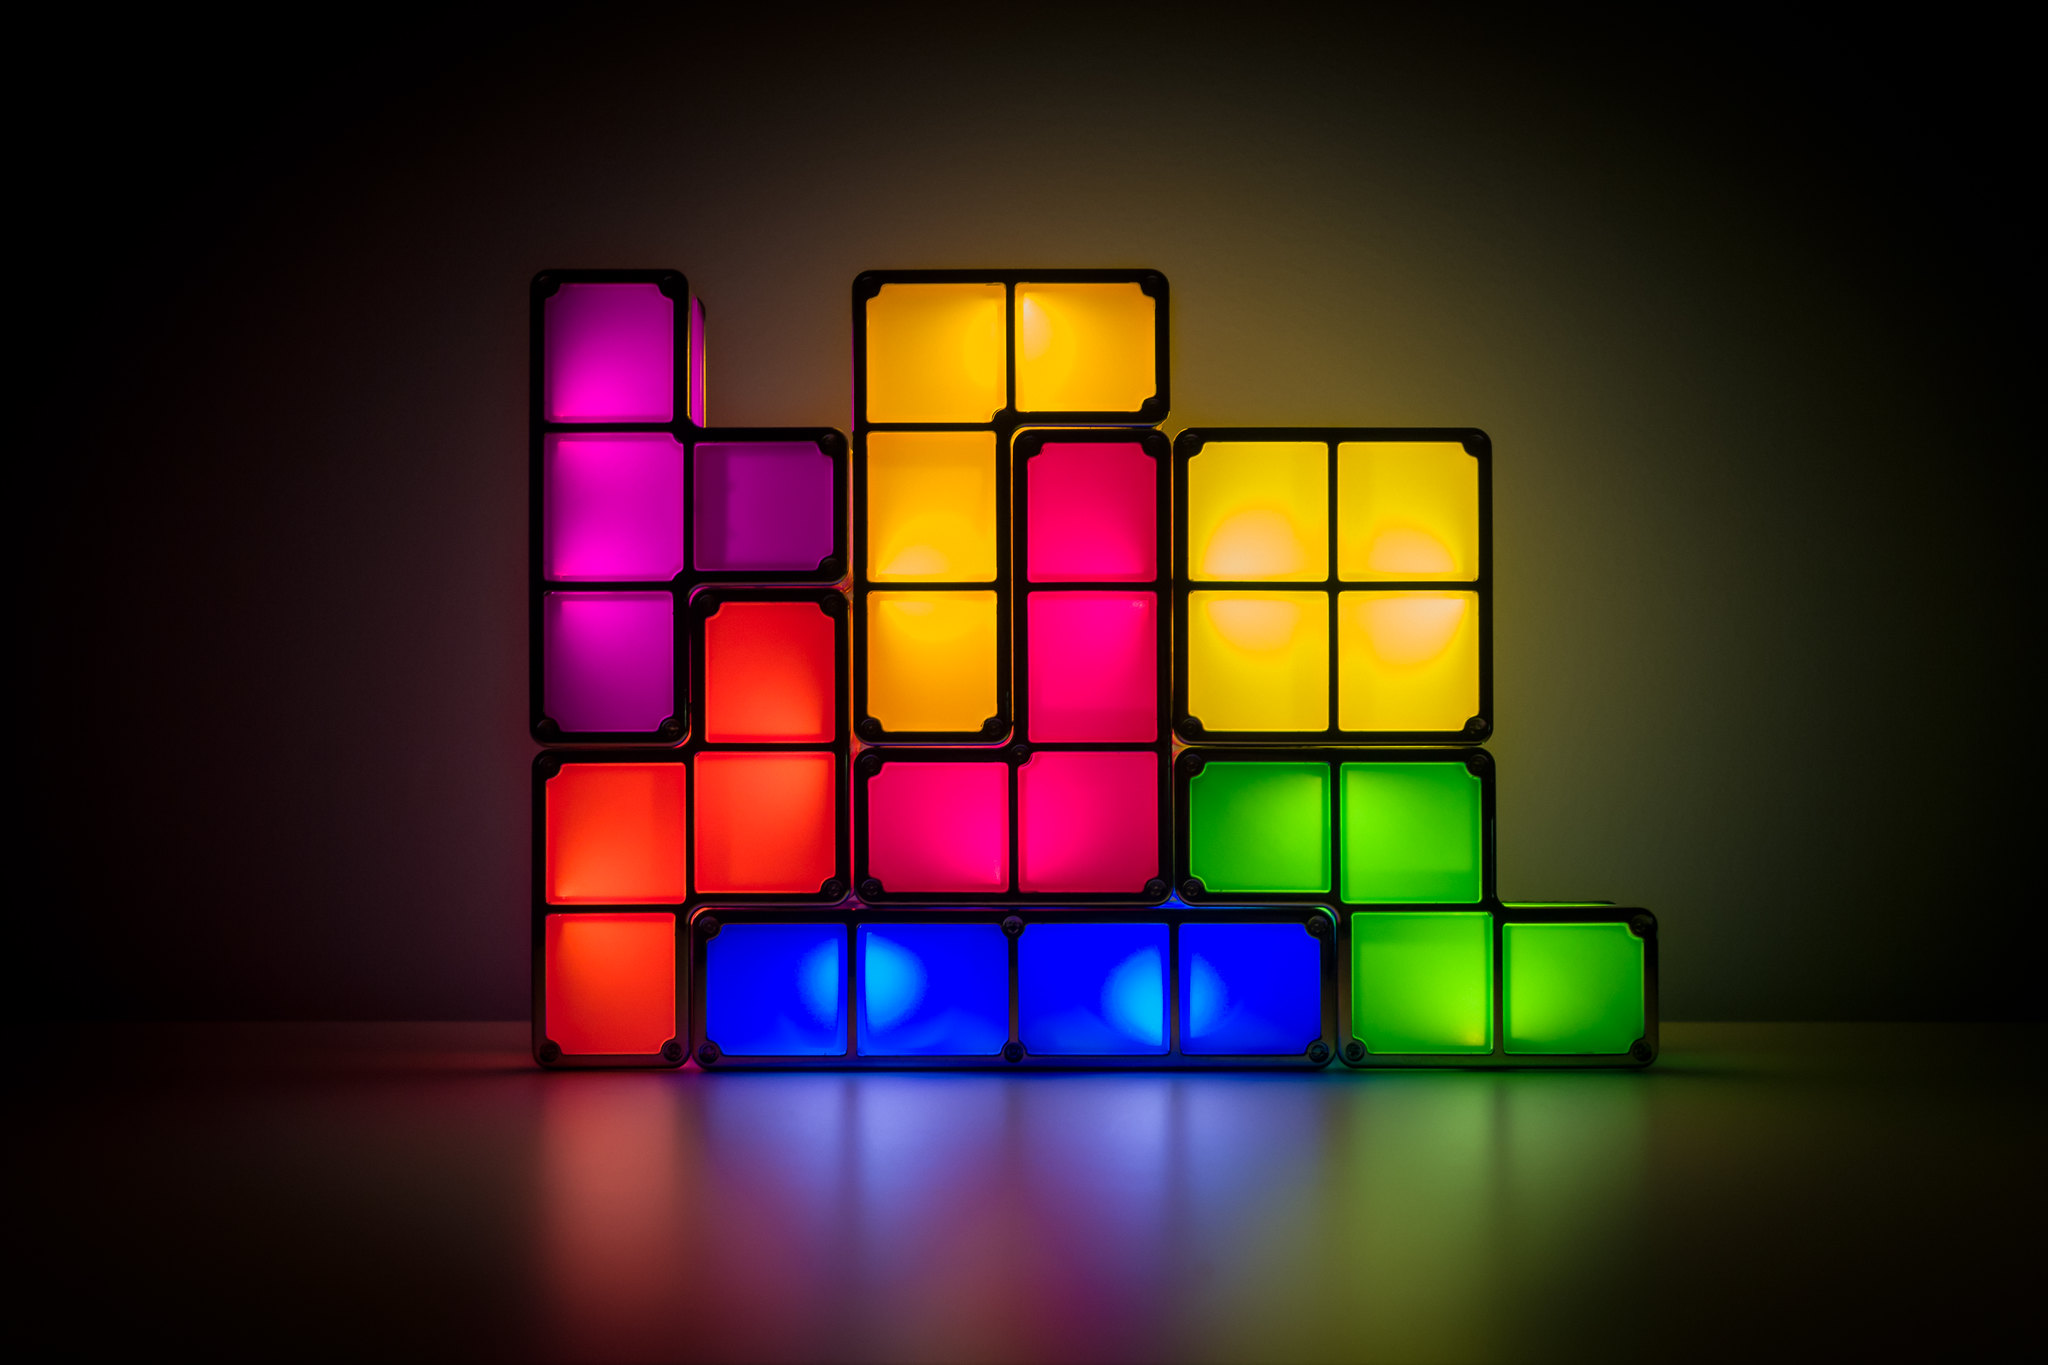 Tetris block lights